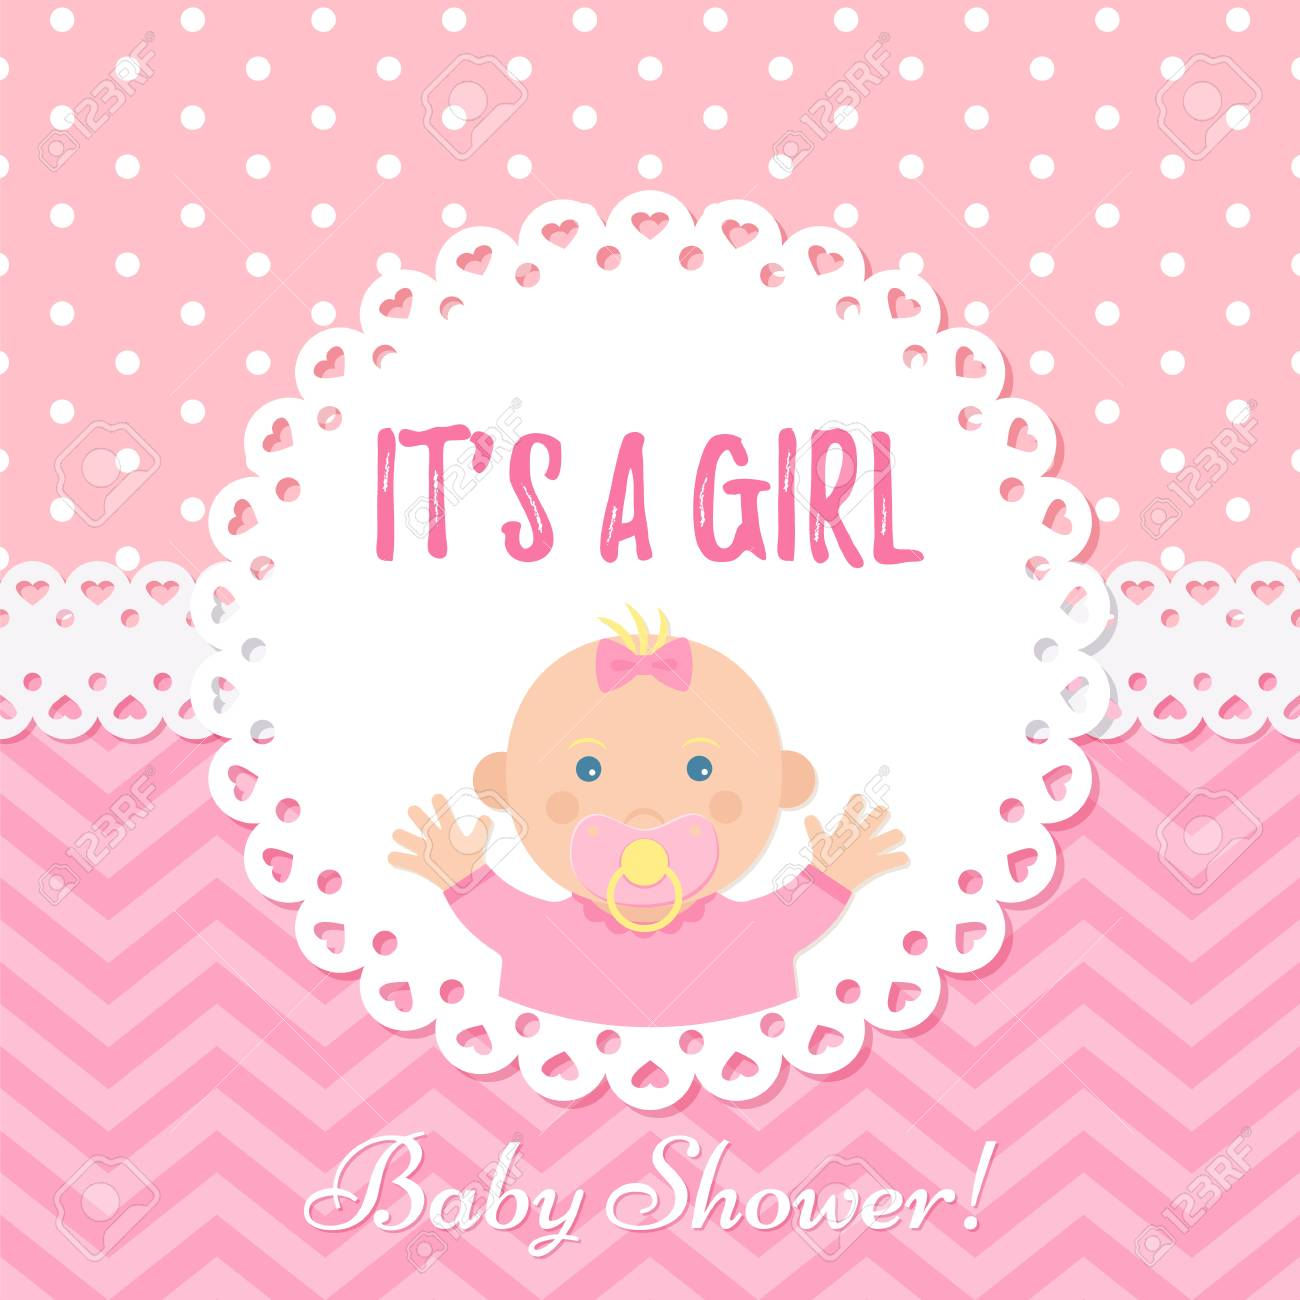 Baby Girl Card Baby Shower Girl Design Cute Pink Banner Vector Royalty Free Cliparts Vectors And Stock Illustration Image 122687704